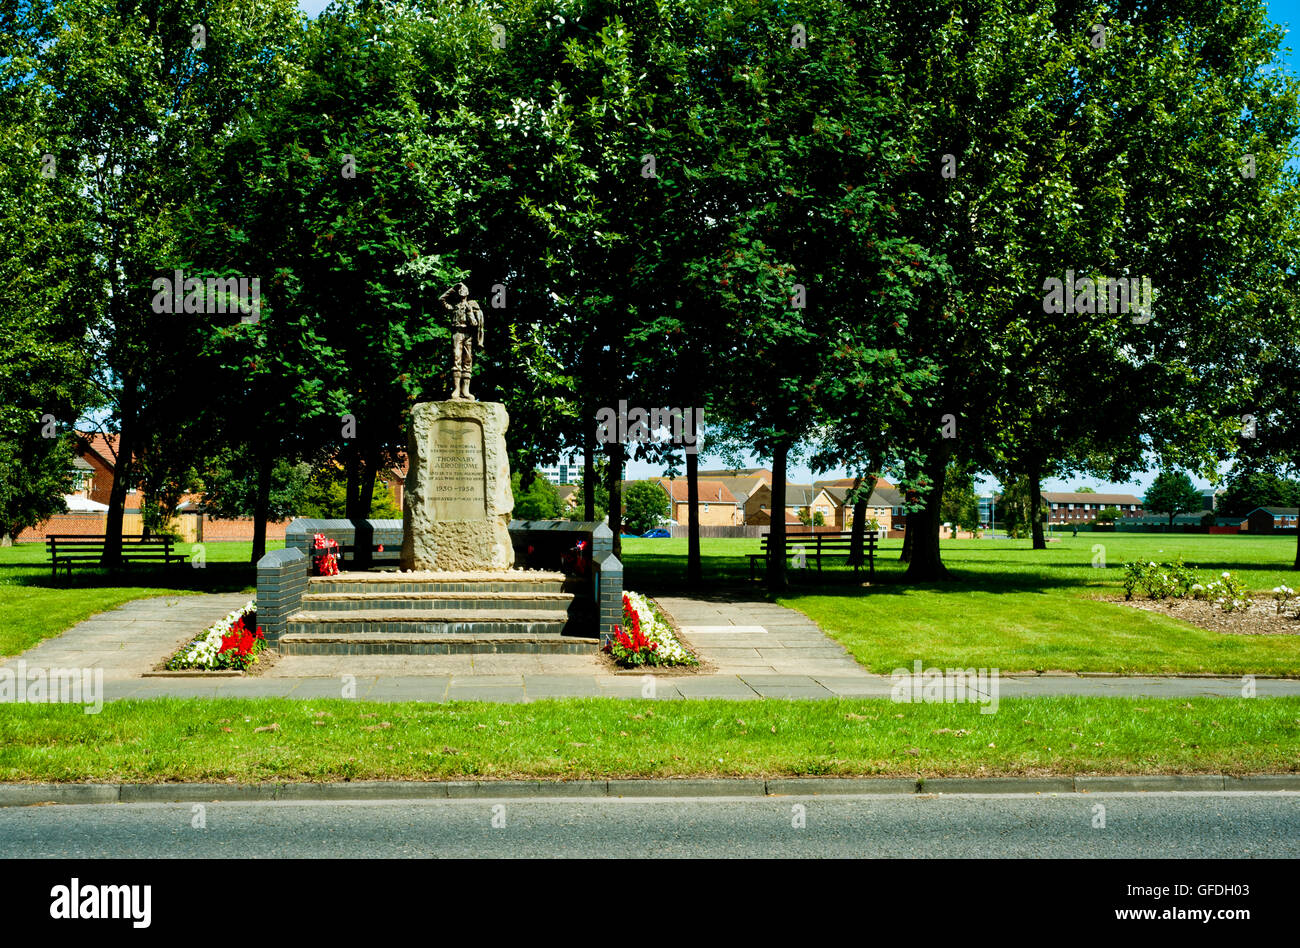 Memorial To Thornaby Aerodrome, Thornaby, Cleveland - Stock Image